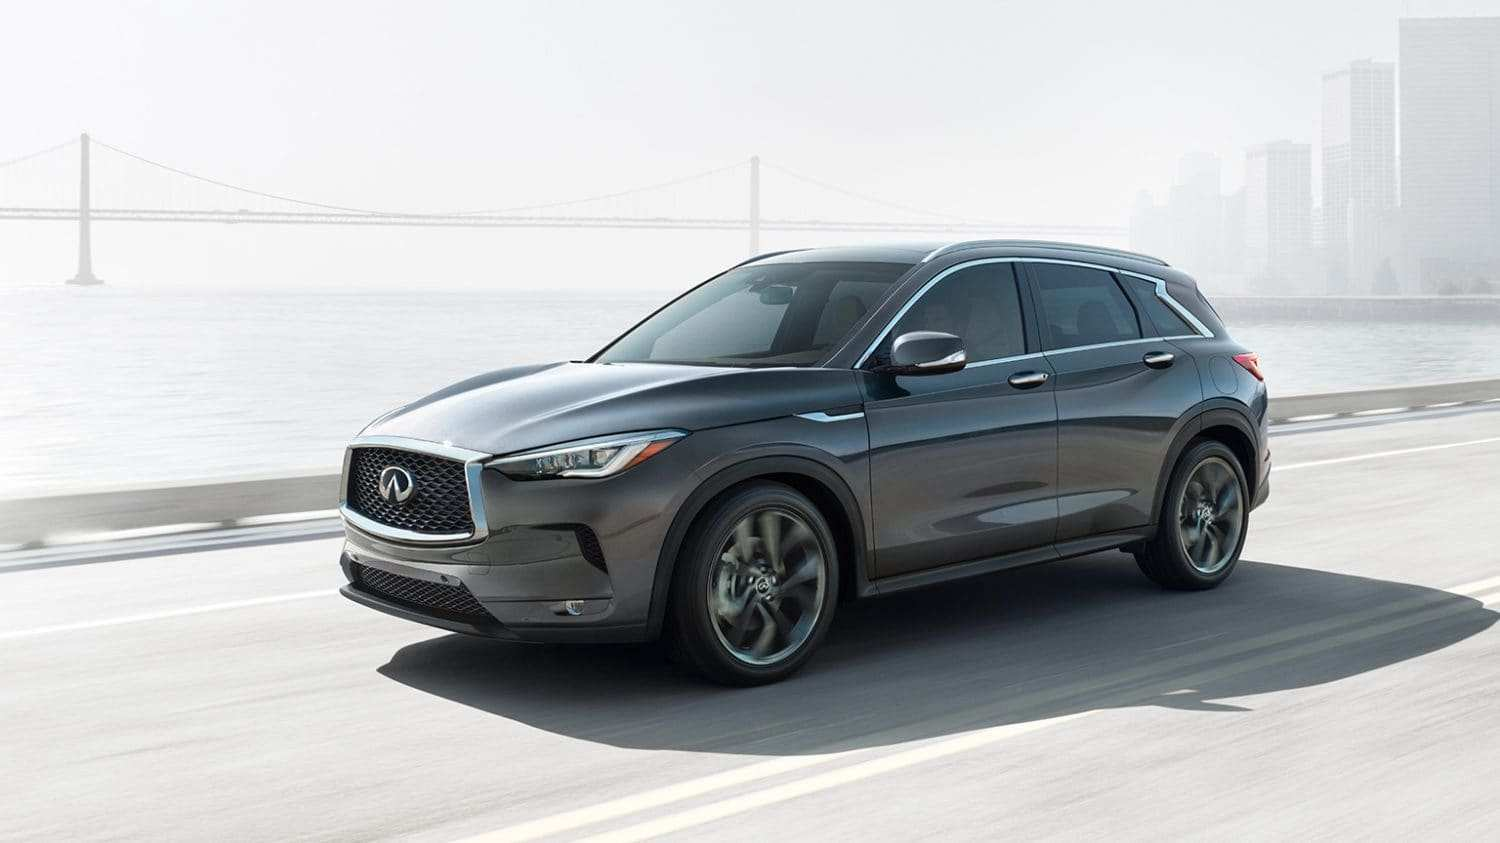 41 Great Best Qx50 Infiniti 2019 Price Release Date Redesign with Best Qx50 Infiniti 2019 Price Release Date